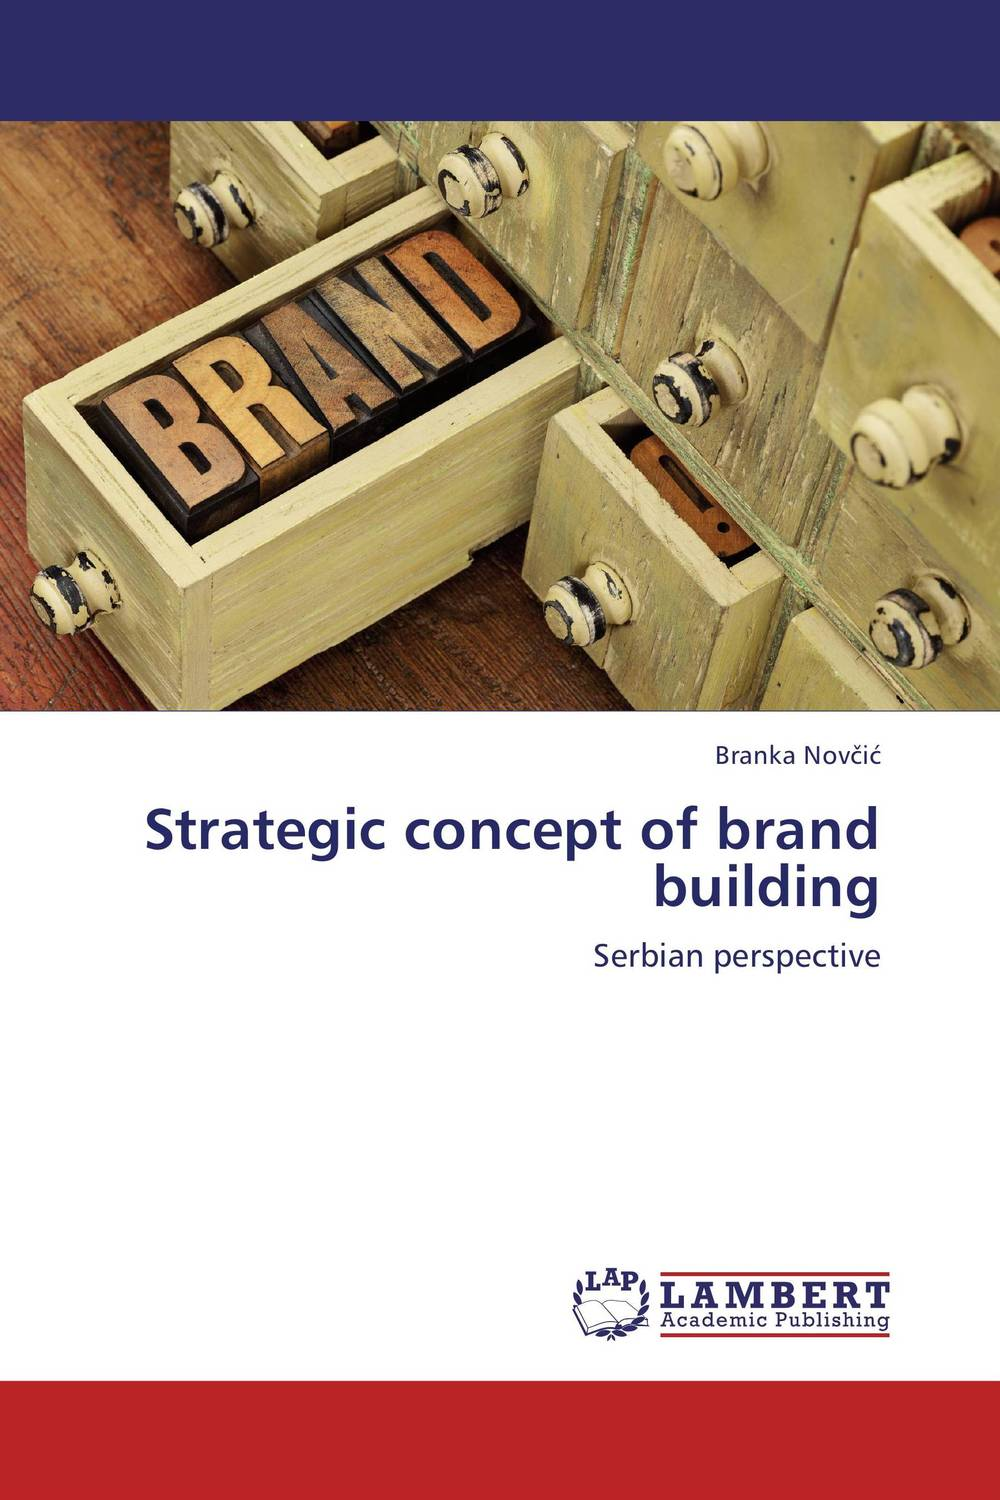 Strategic concept of brand building the counterlife